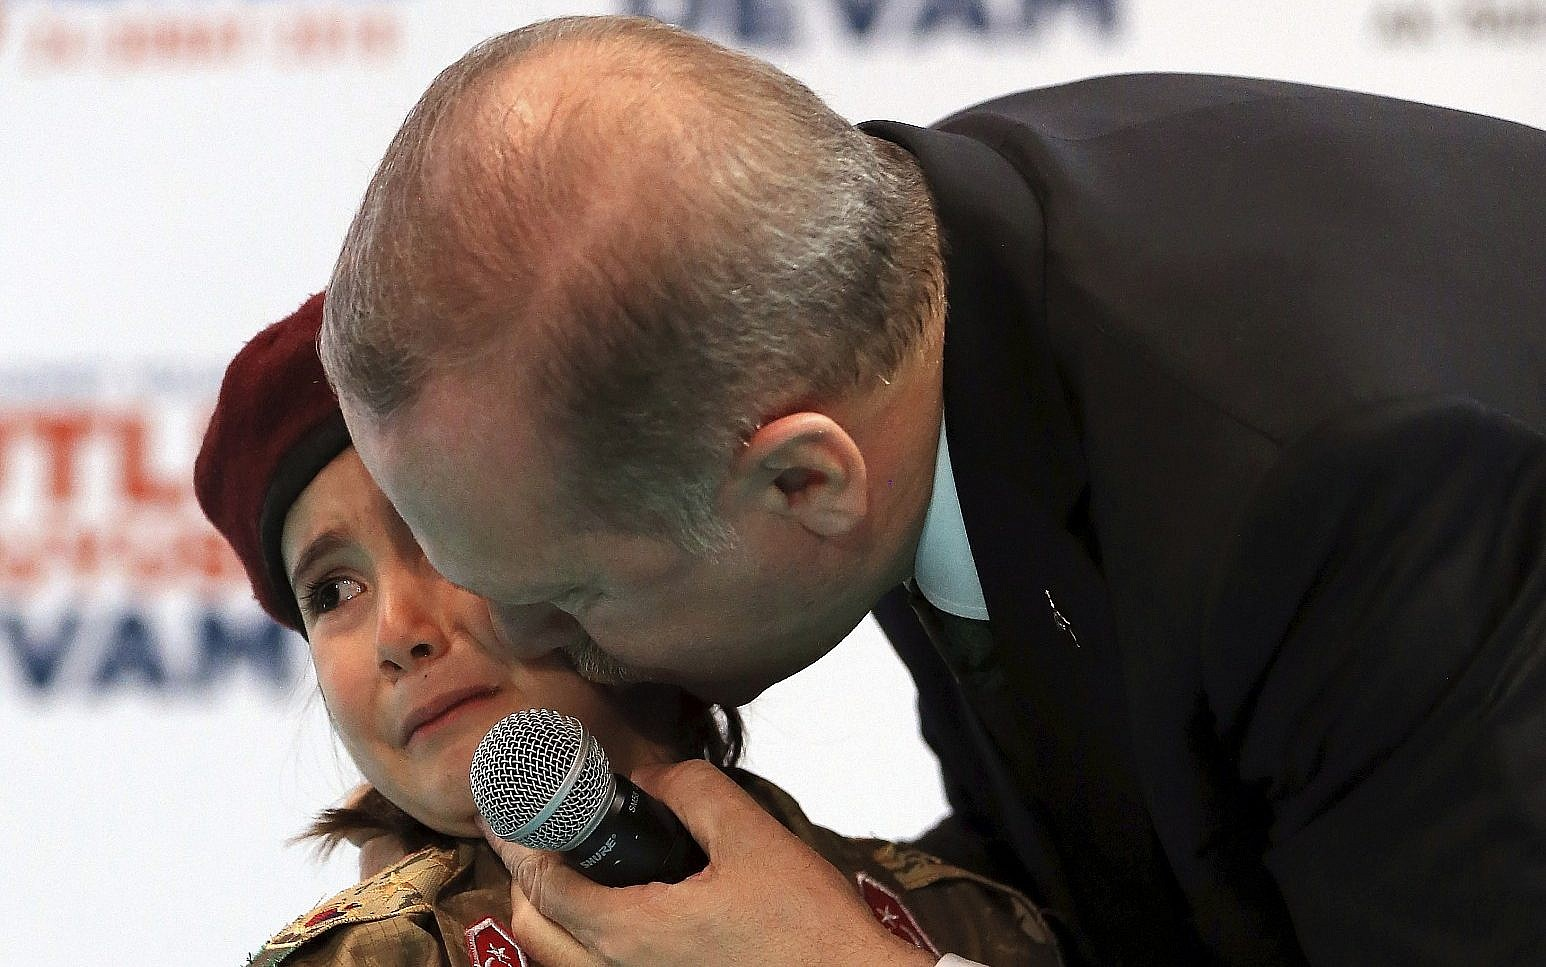 Erdogan under fire for wishing martyrdom on crying 6-year-old girl